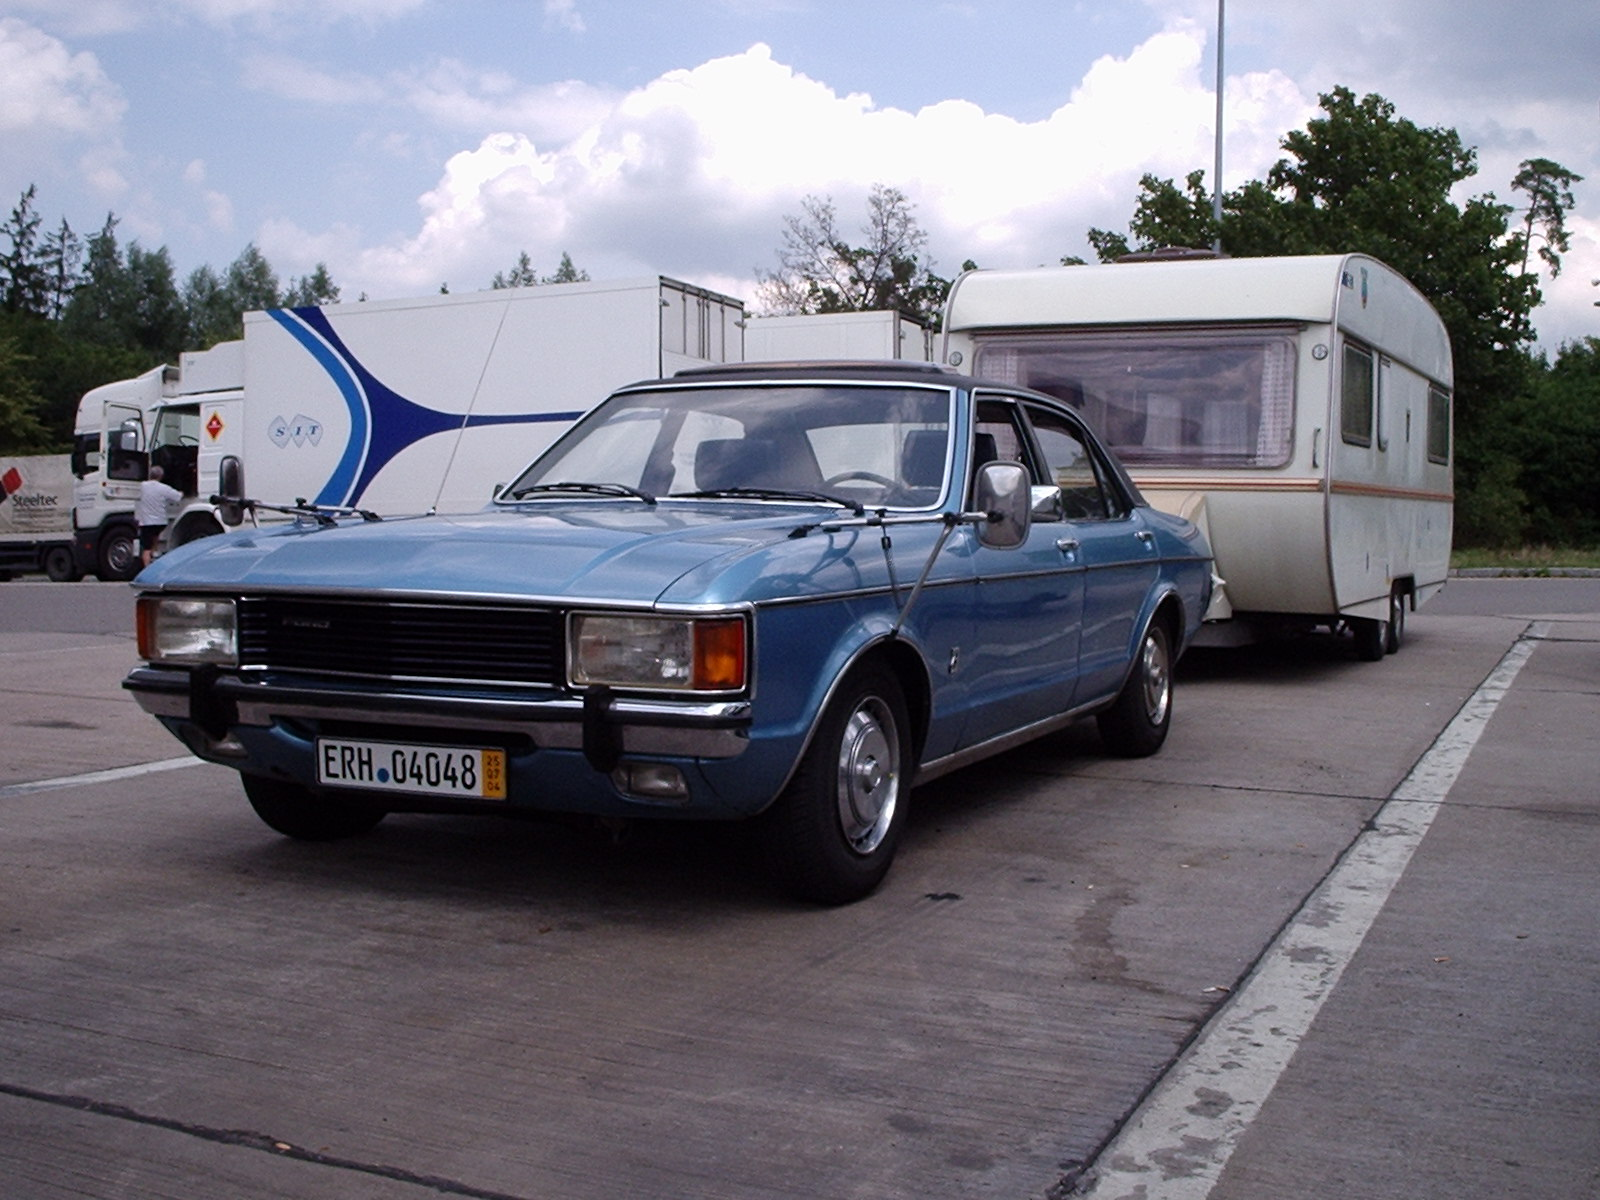 File:Ford-Granada.jpg - Wikimedia Commons